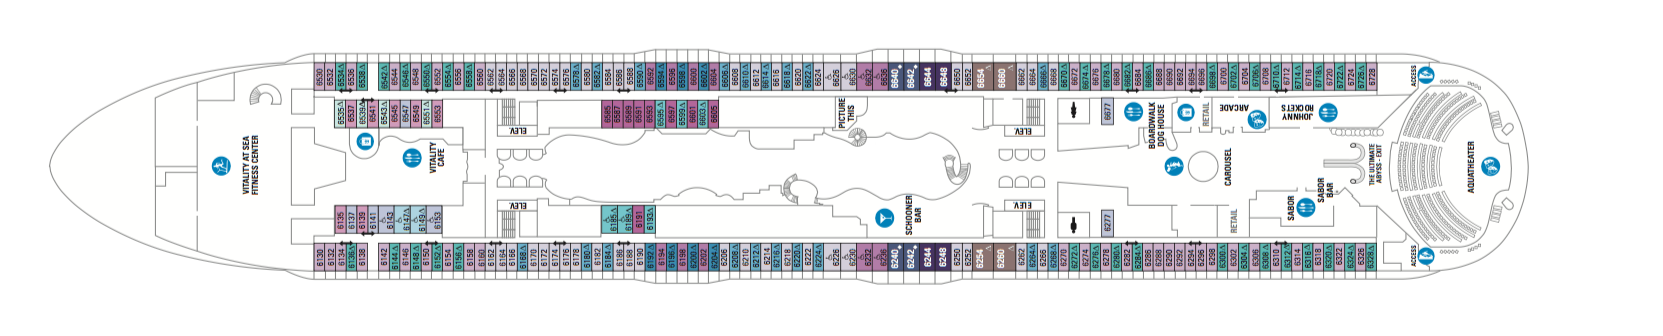 Royal Caribbean International Symphony of the Seas Deck Plans Deck 6.png